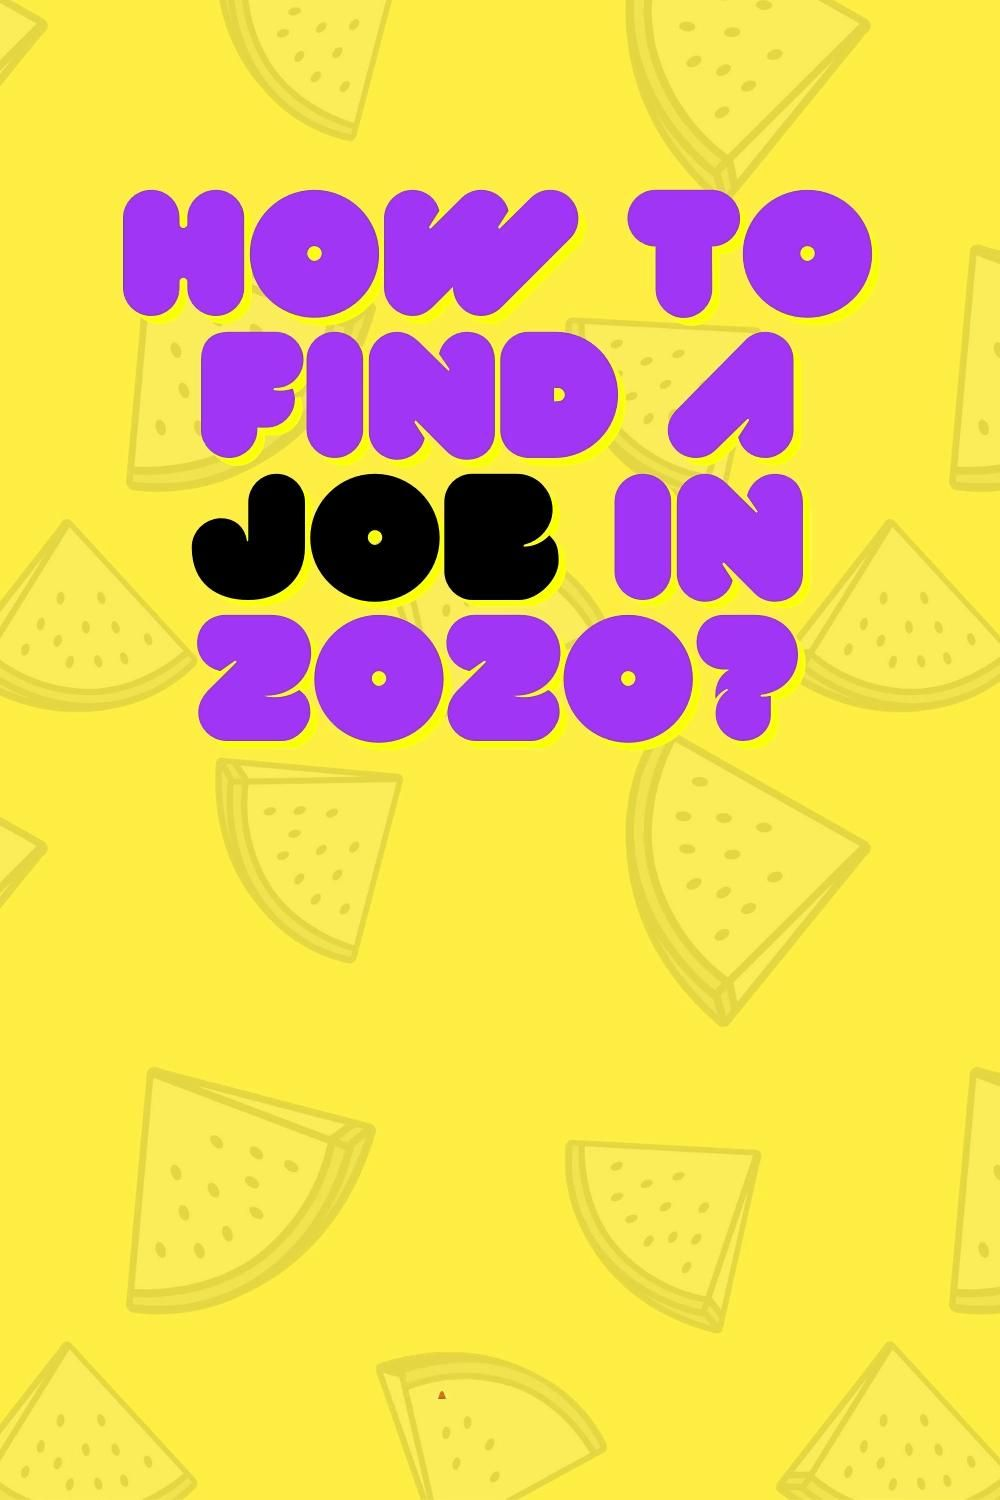 Job hunting strategy is what you need to succeed in this difficult job market. Make sure you are ready and uptodate whit what is happening to get the job you want.  #jobhuntingstrategy #jobhunting #jobhunt #jobhunt2020 #jobsearch #jobsearch2020 #hiremenow